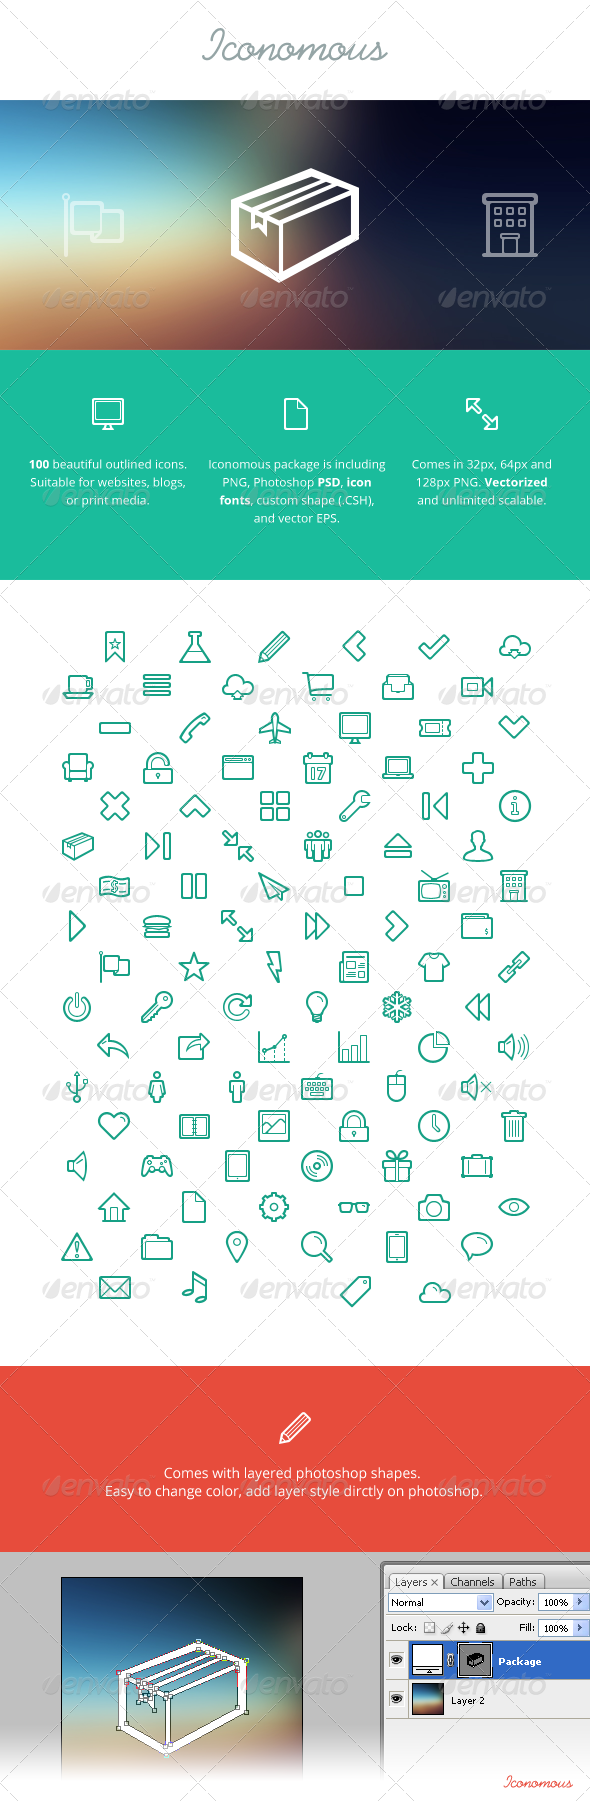 GraphicRiver Iconomous 100 Outlined Icons 4254342